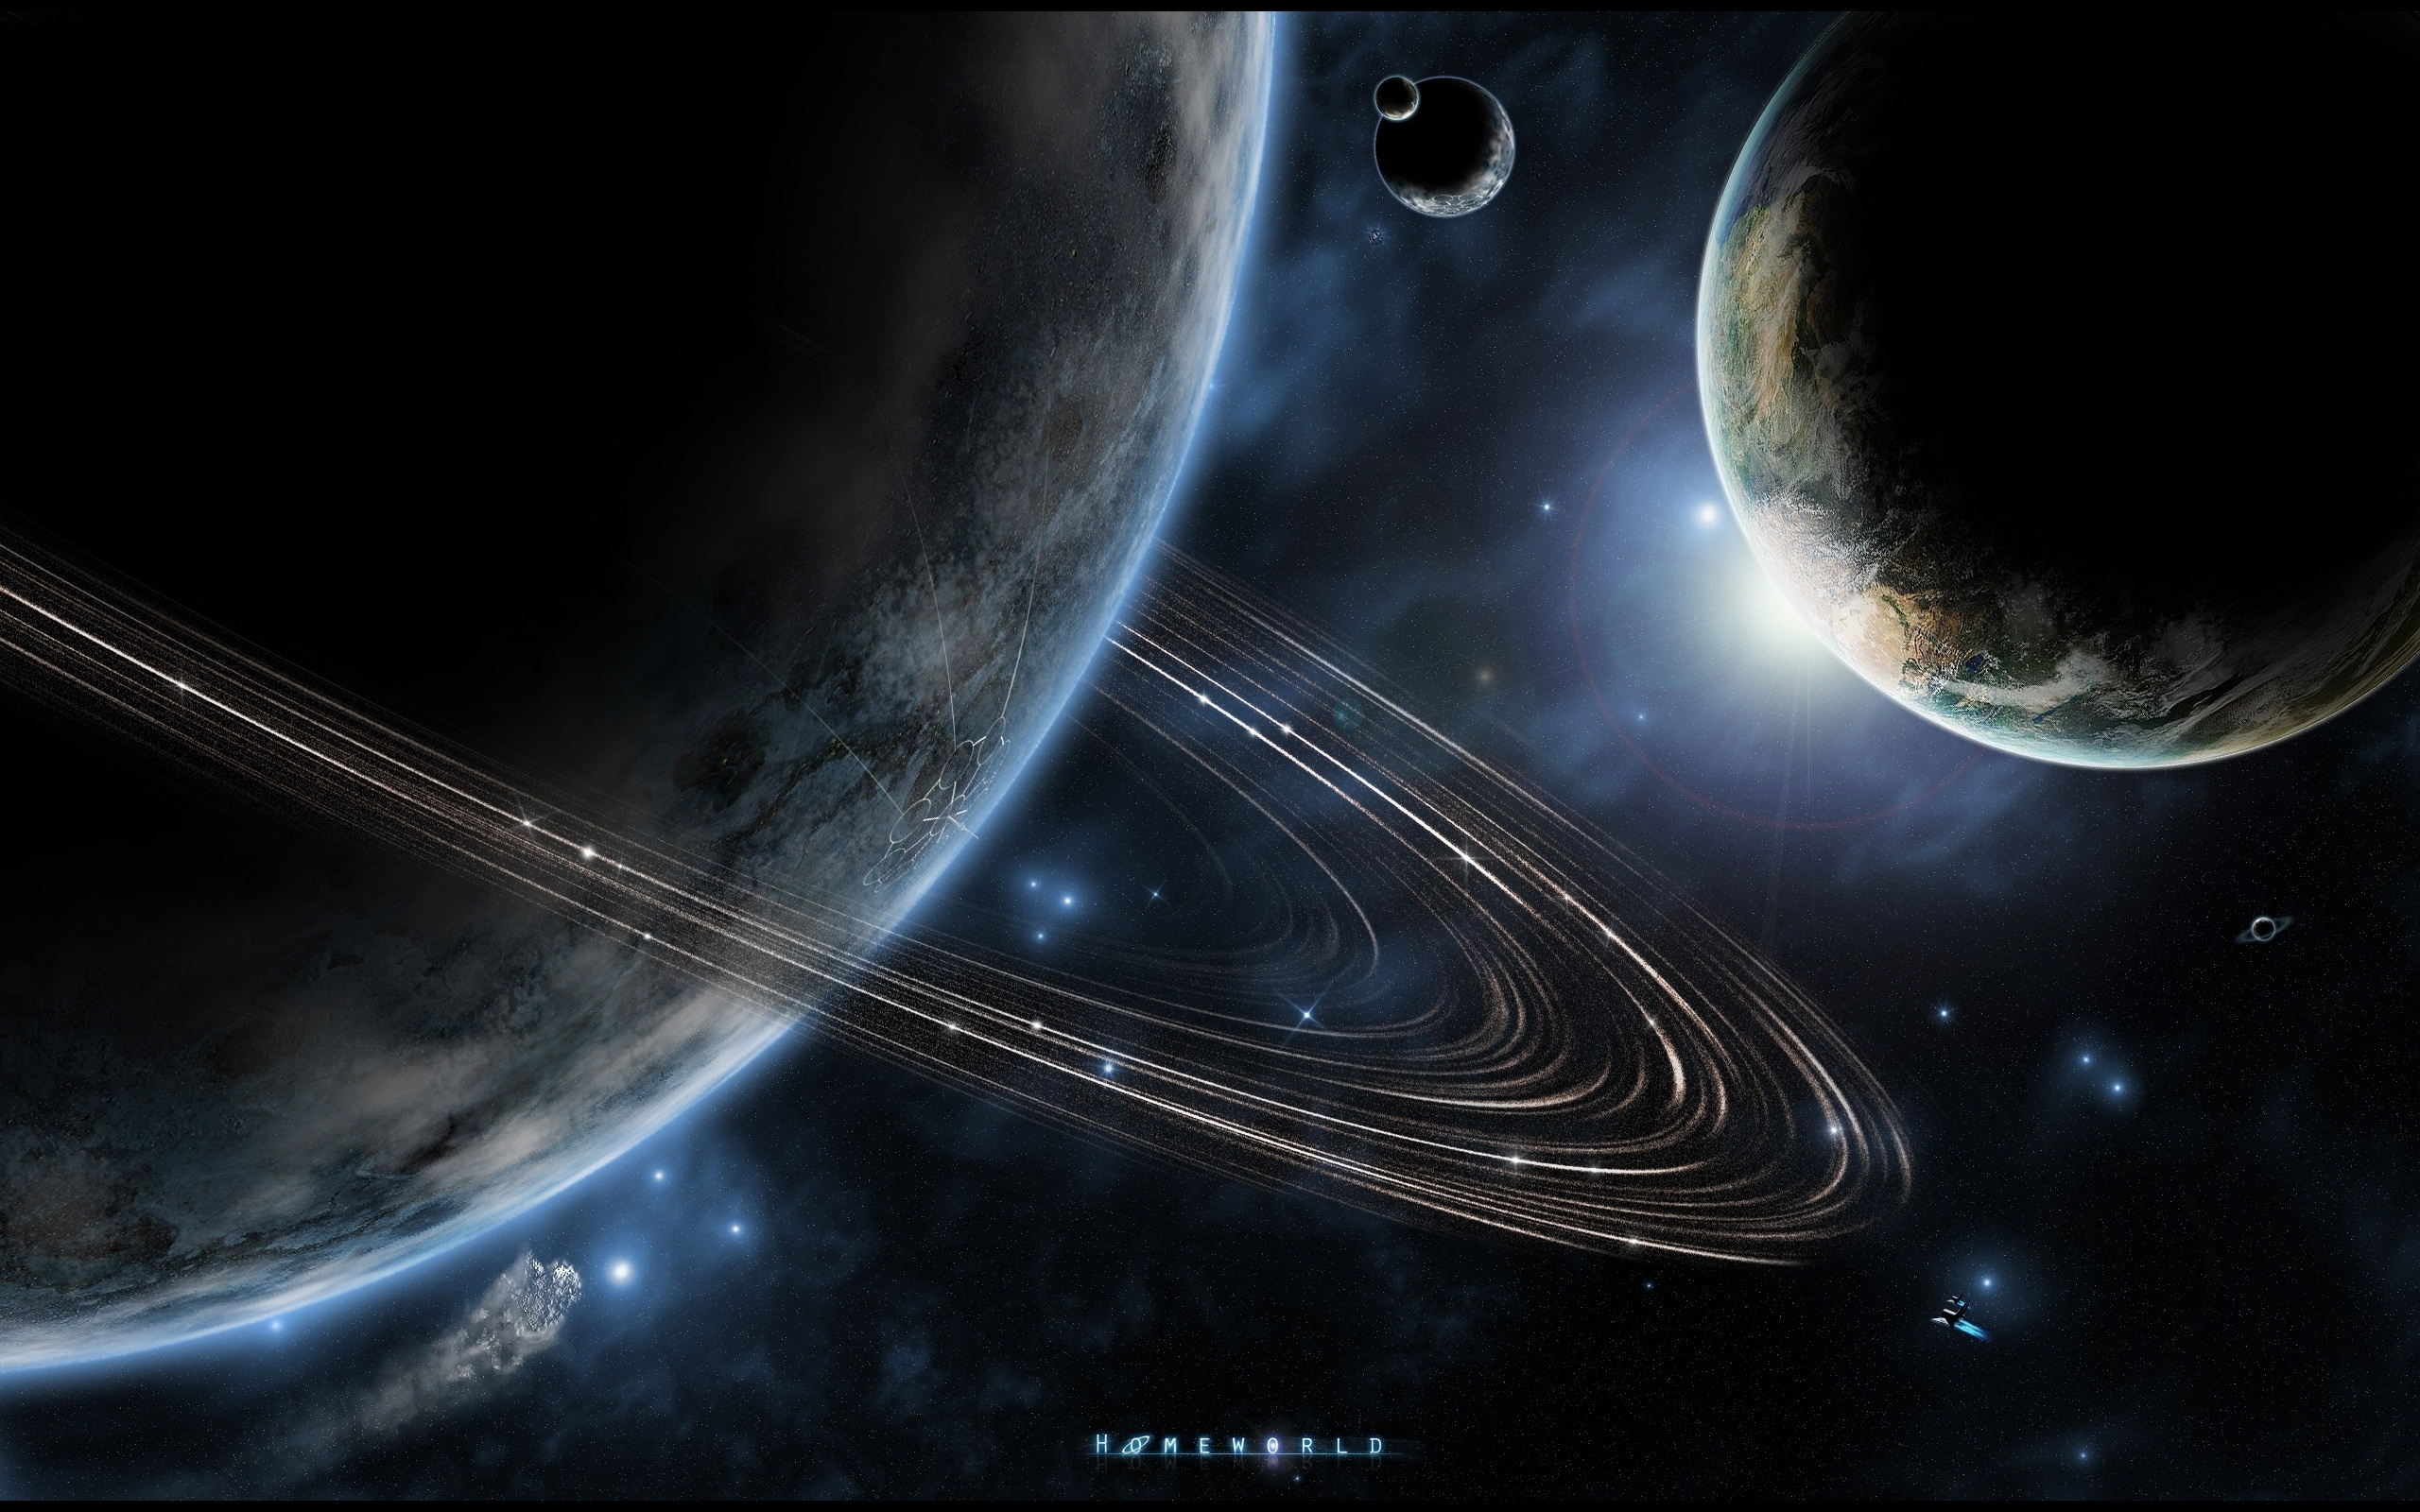 Outer space avatar stars planets HD Wallpapers 2560x1600